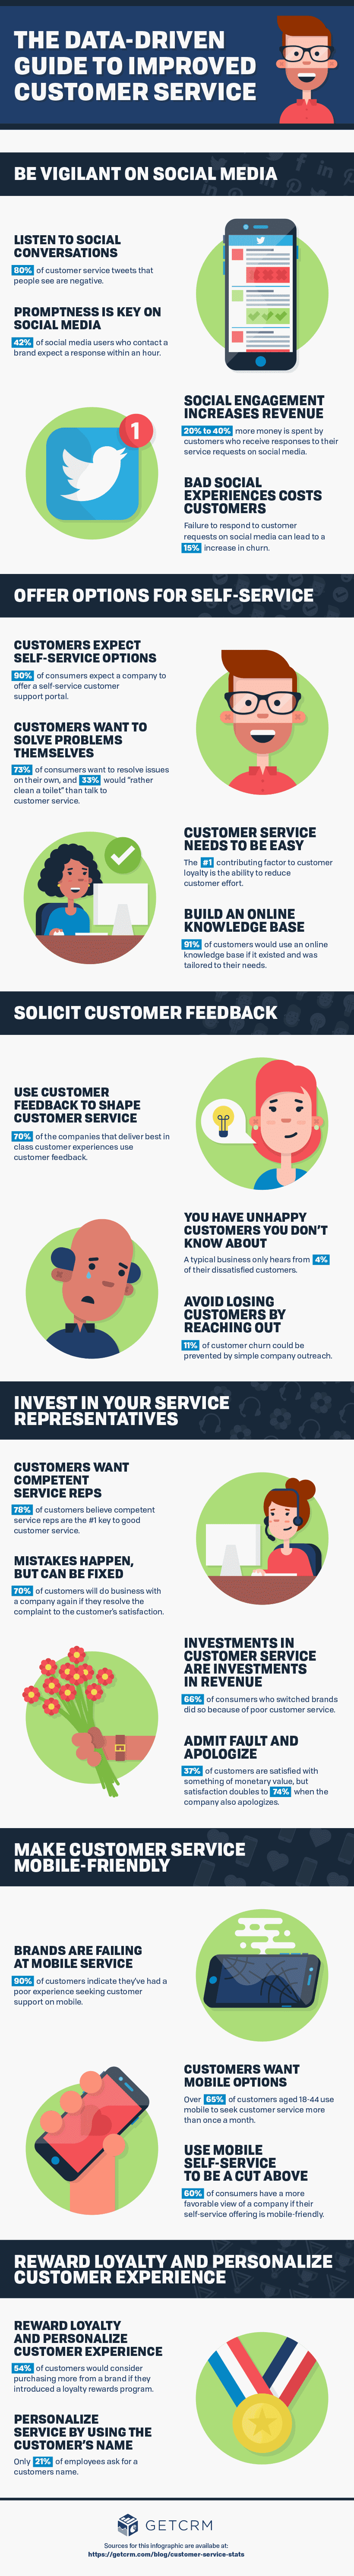 Data driven Guide to Customer Service